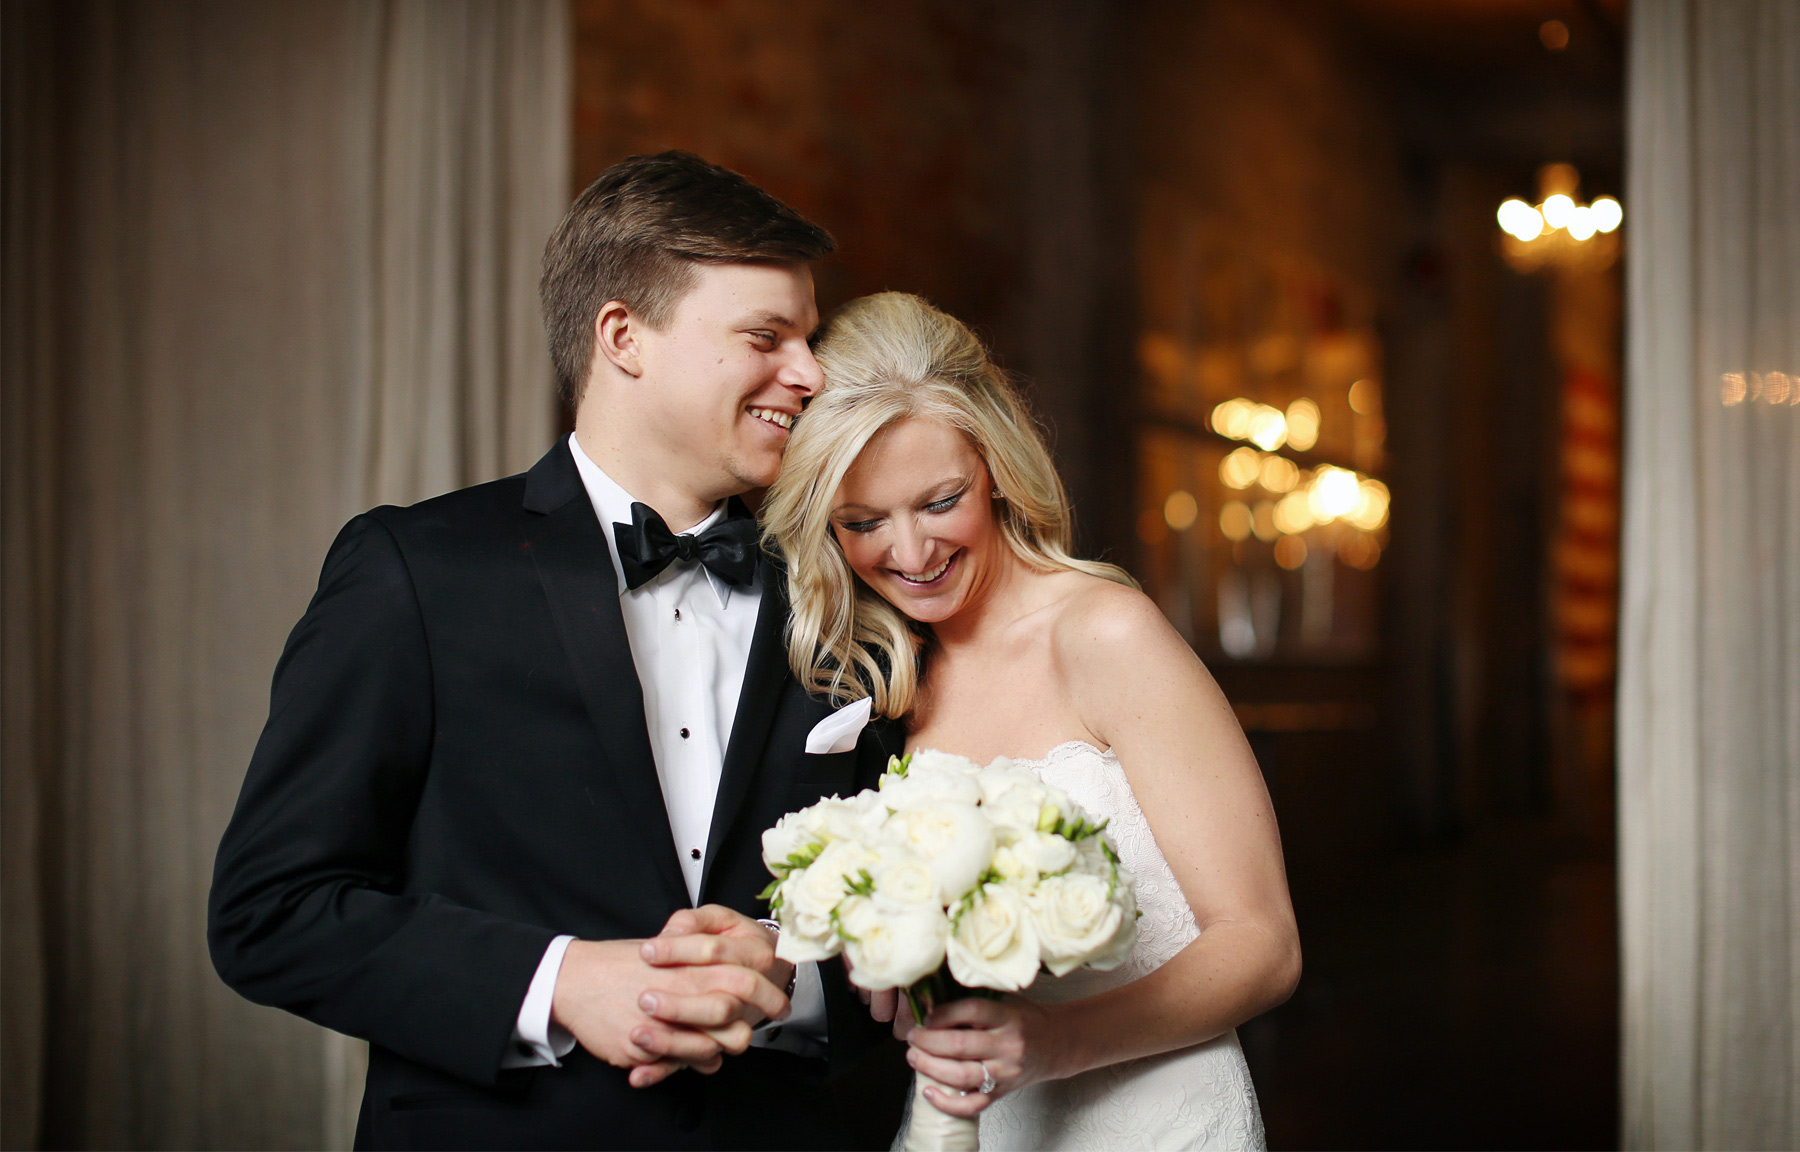 06-Minneapolis-Minnesota-Wedding-Photography-by-Vick-Photography-Aria-Downtown-First-Look-Caroline-and-J.jpg